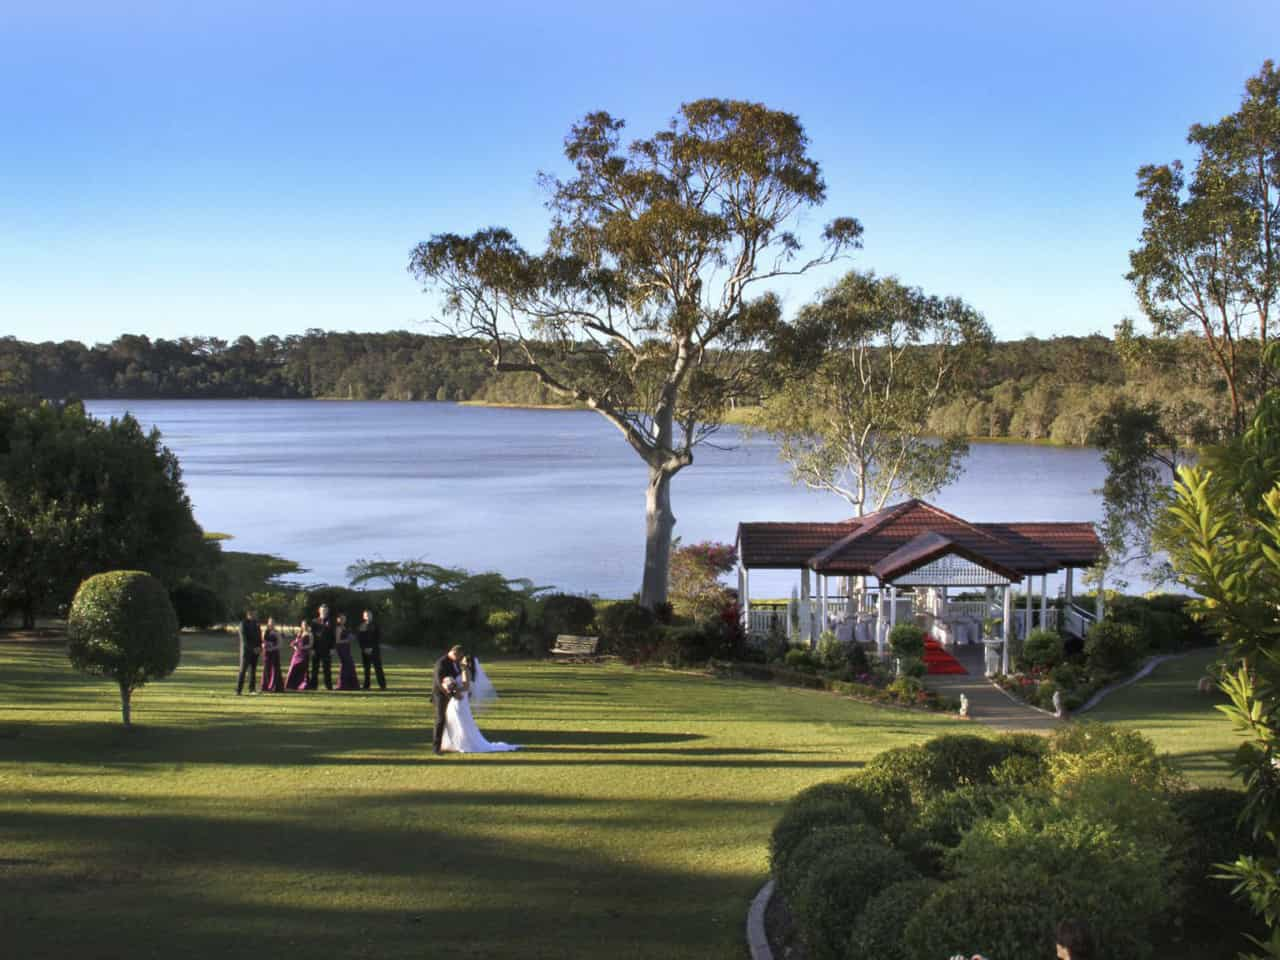 Lakeside wedding ceremony with bride and groom on lawn